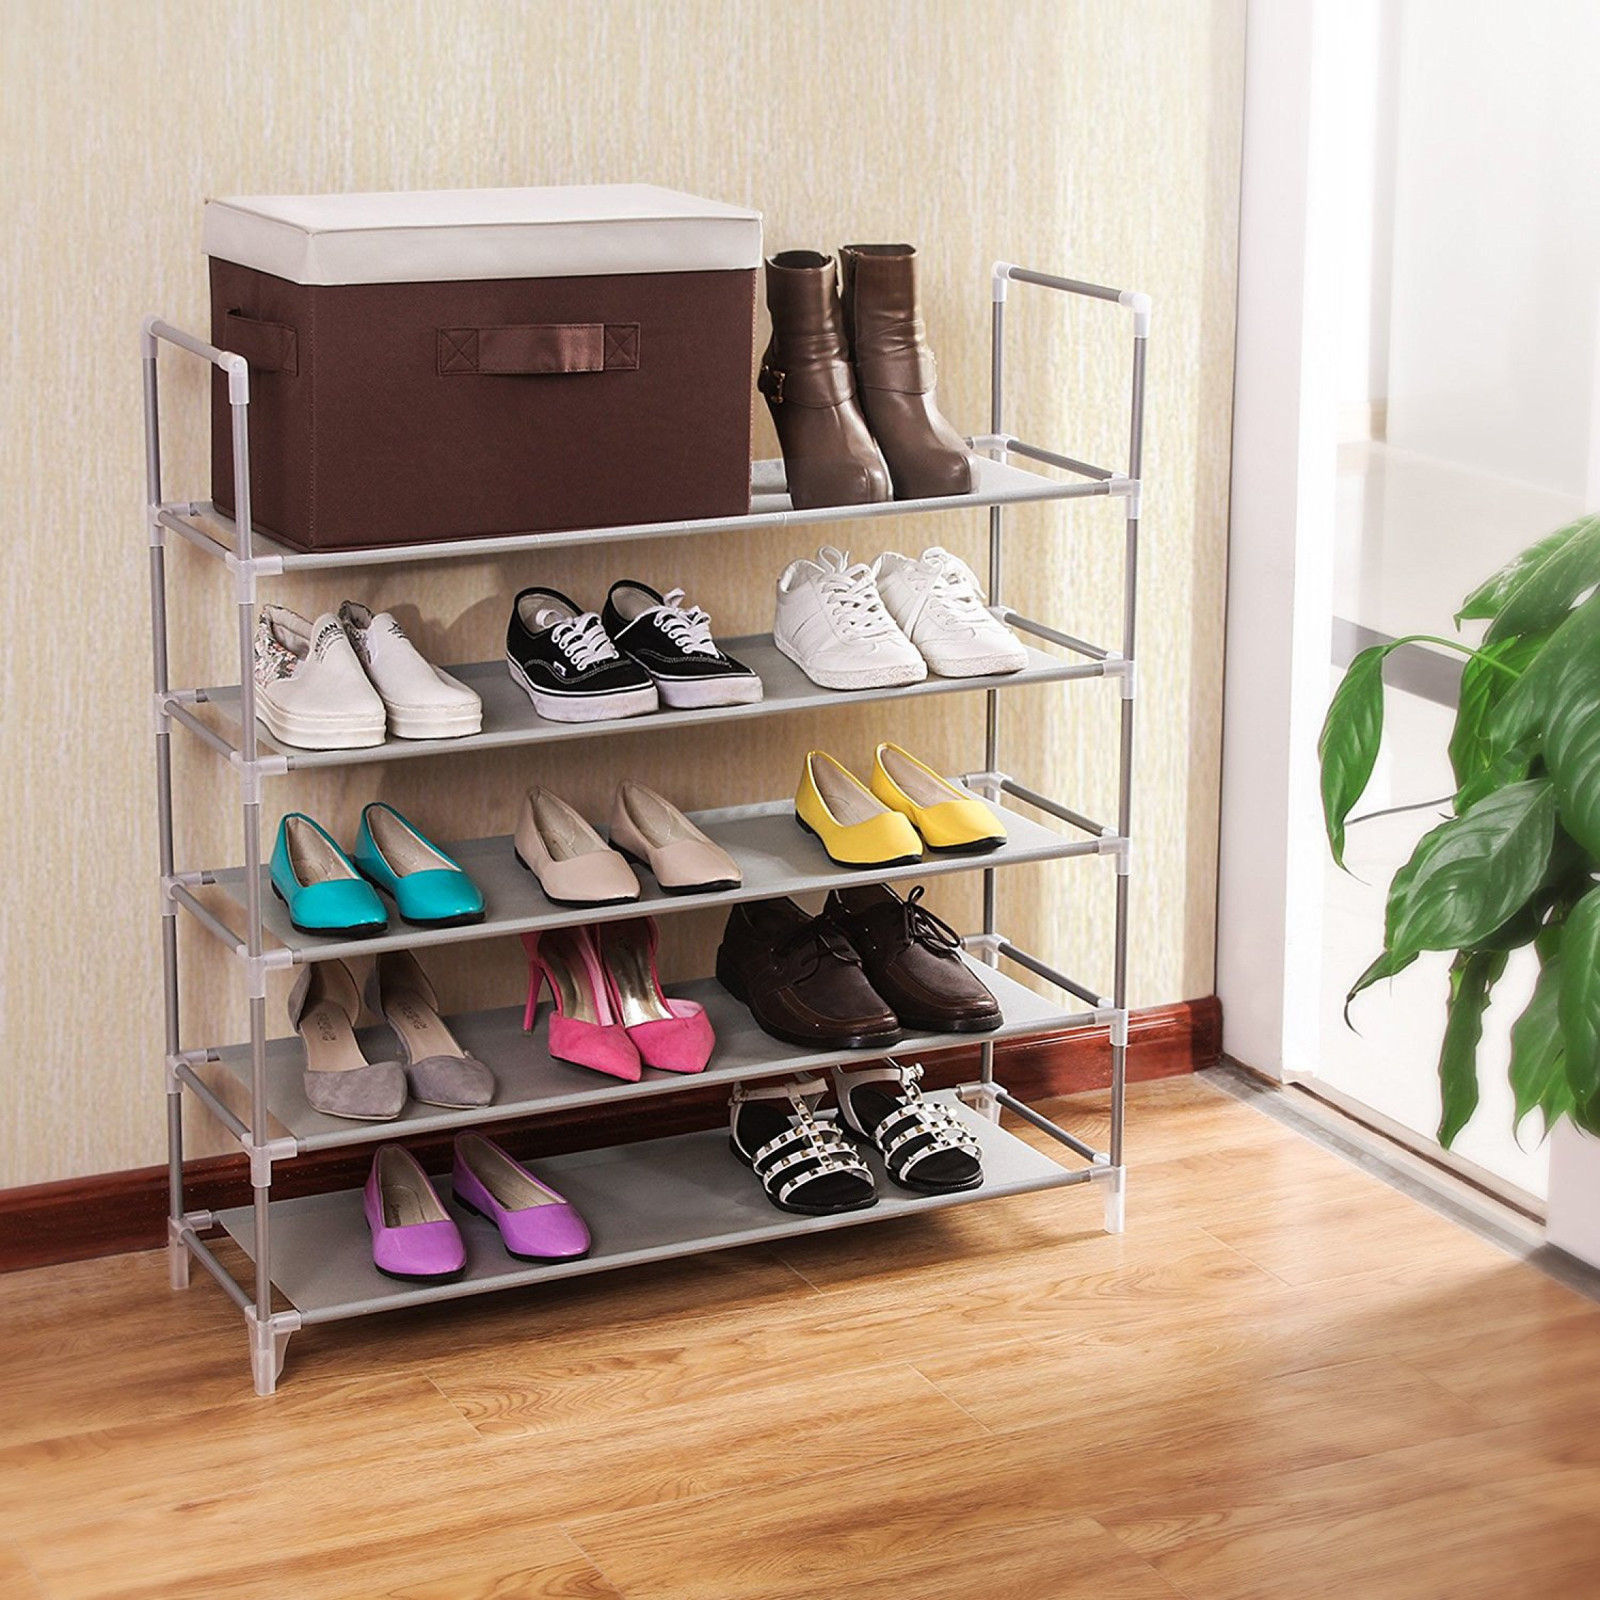 5 Tier Home Storage Organizer Cabinet Shelf Space Saving Shoe Tower Rack Stand